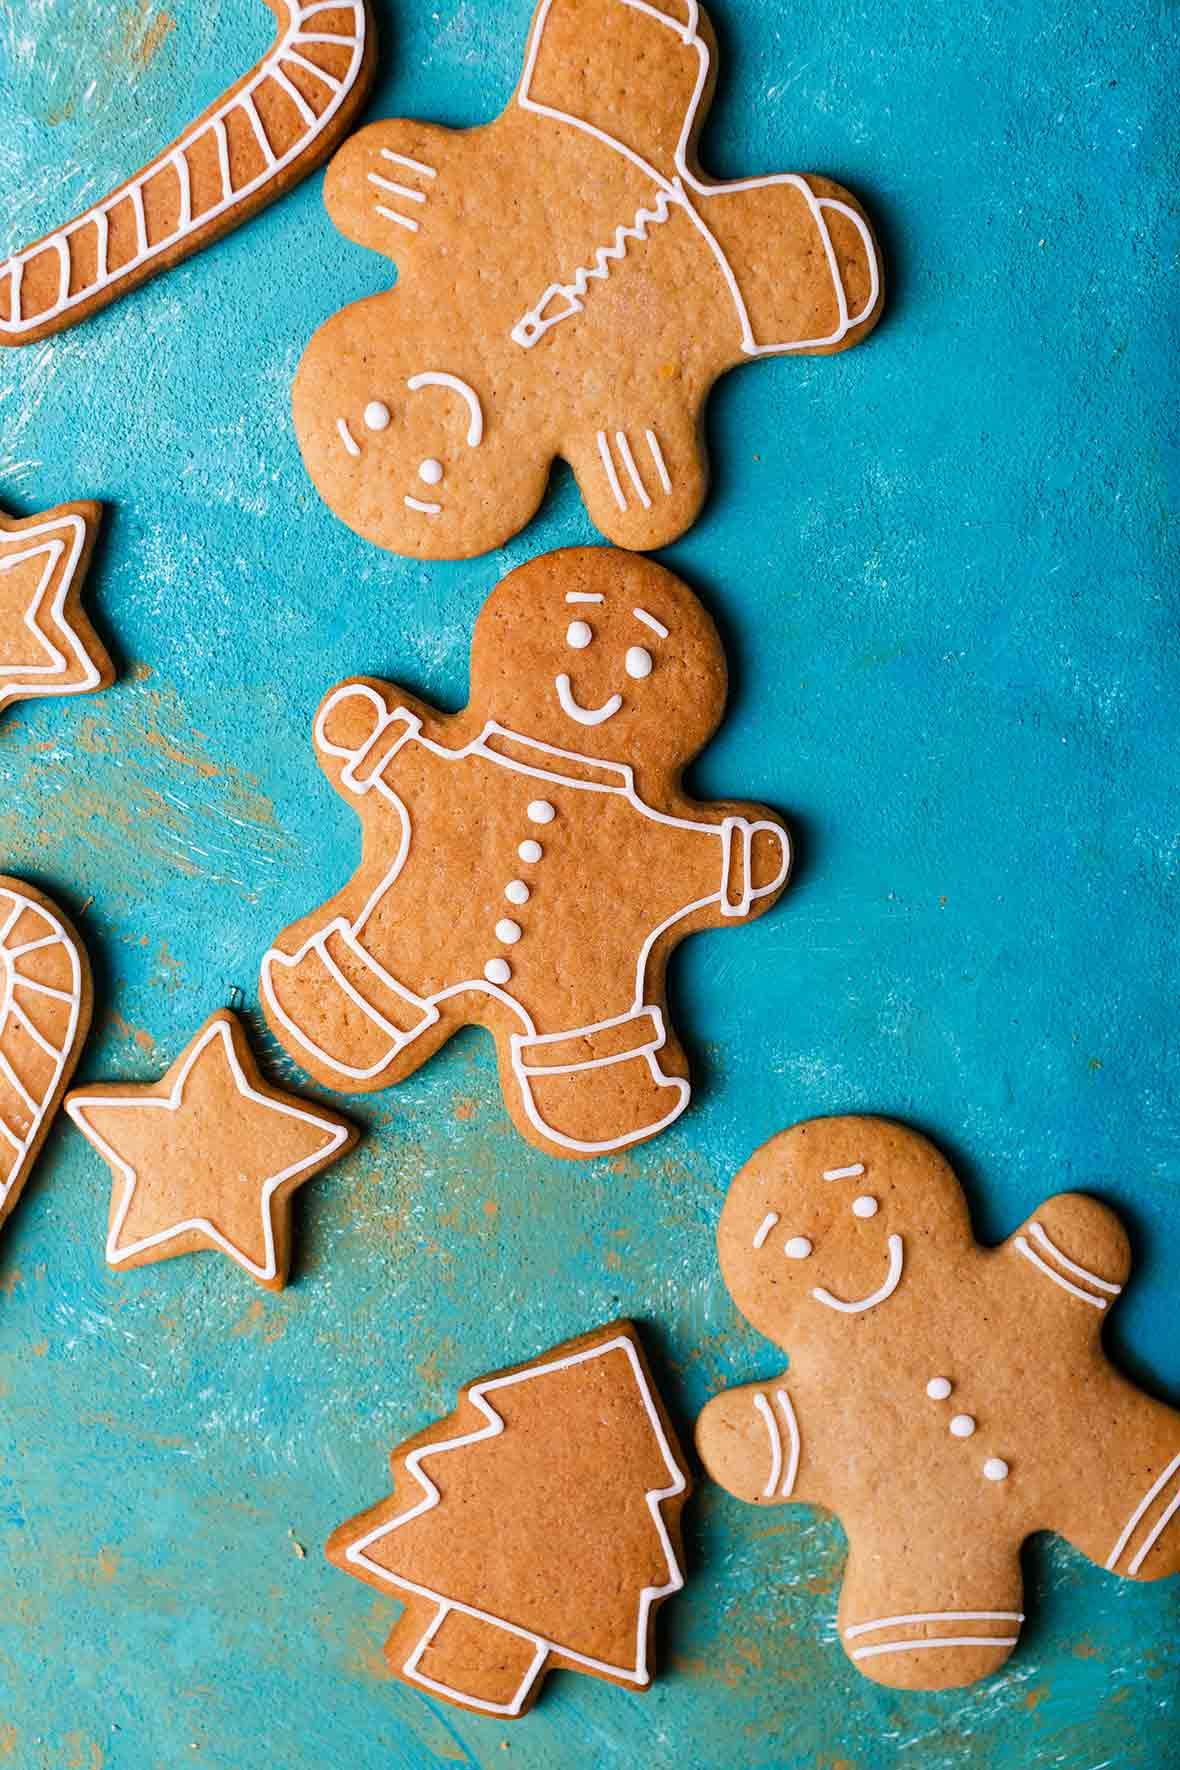 A selection of decorated gingerbread cookies in the shapes of men, stars, and trees